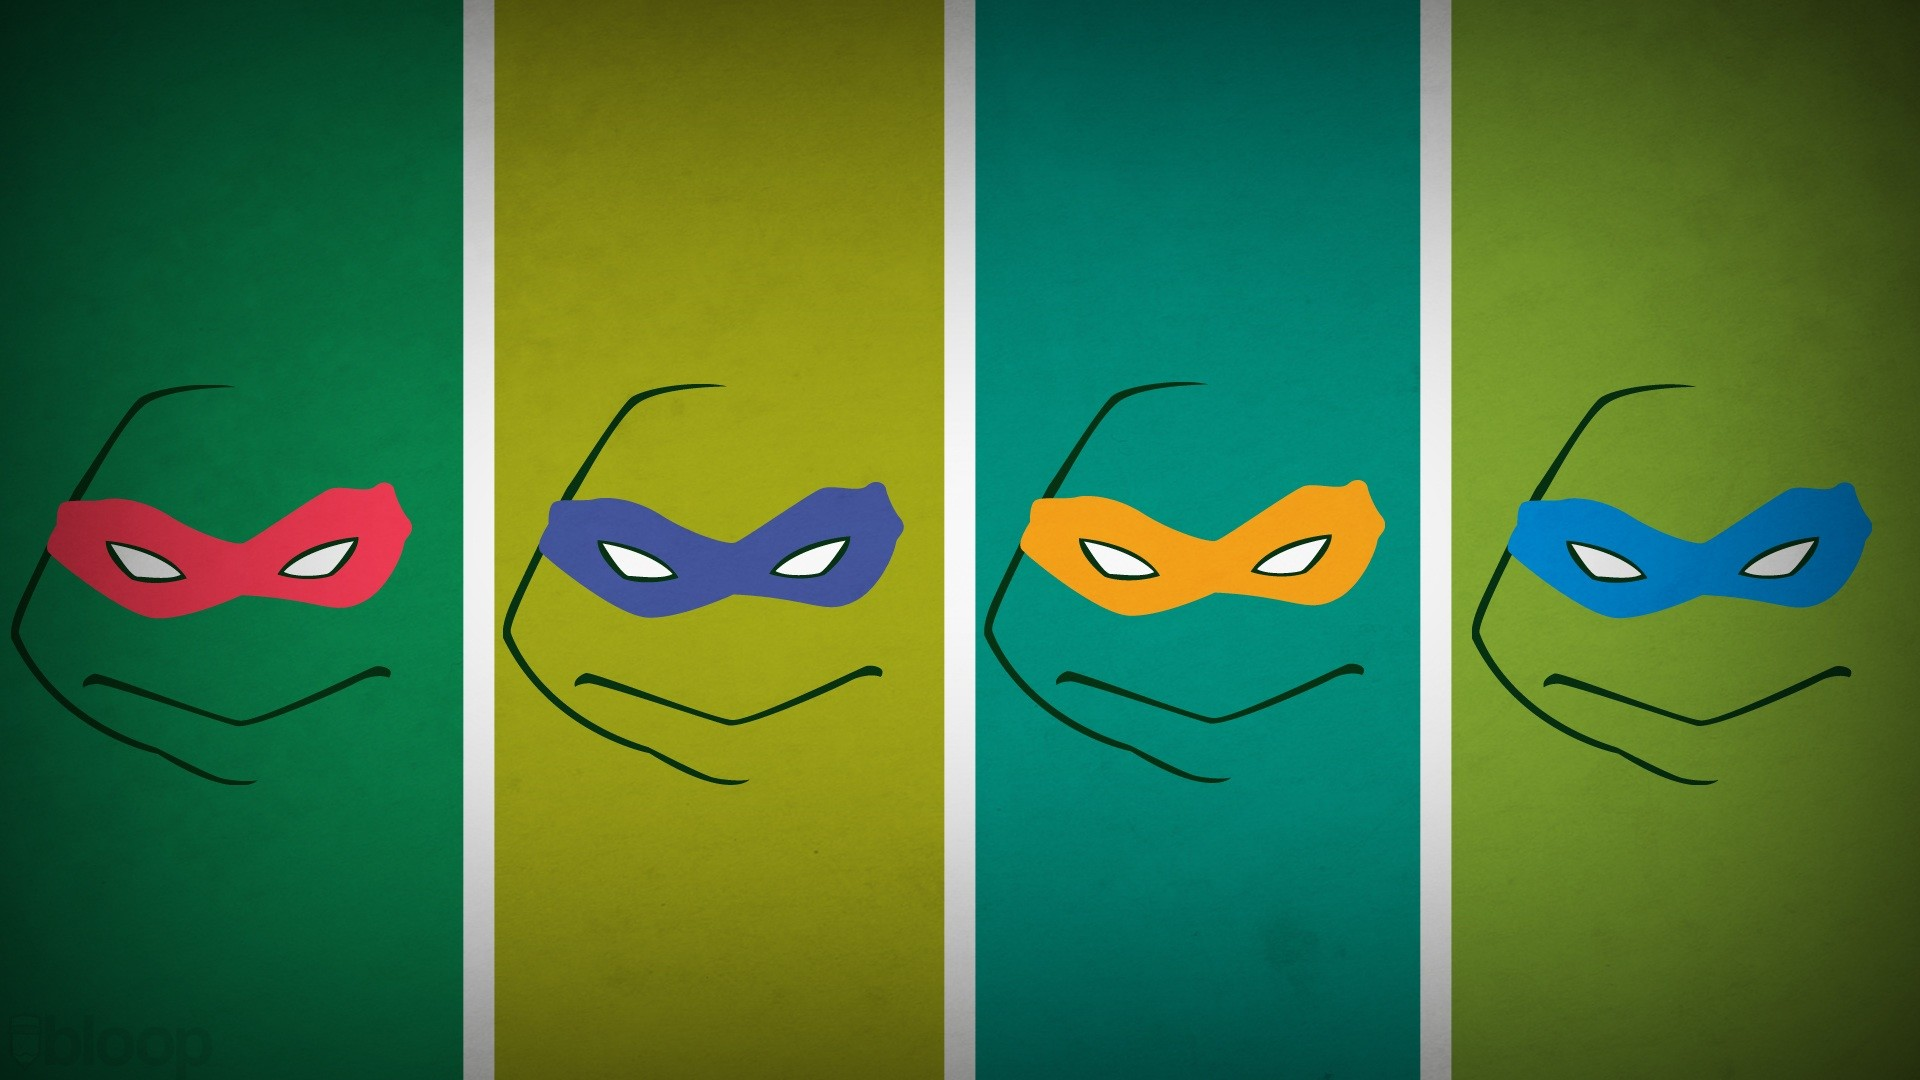 1920x1080 Images Download Tmnt Backgrounds.